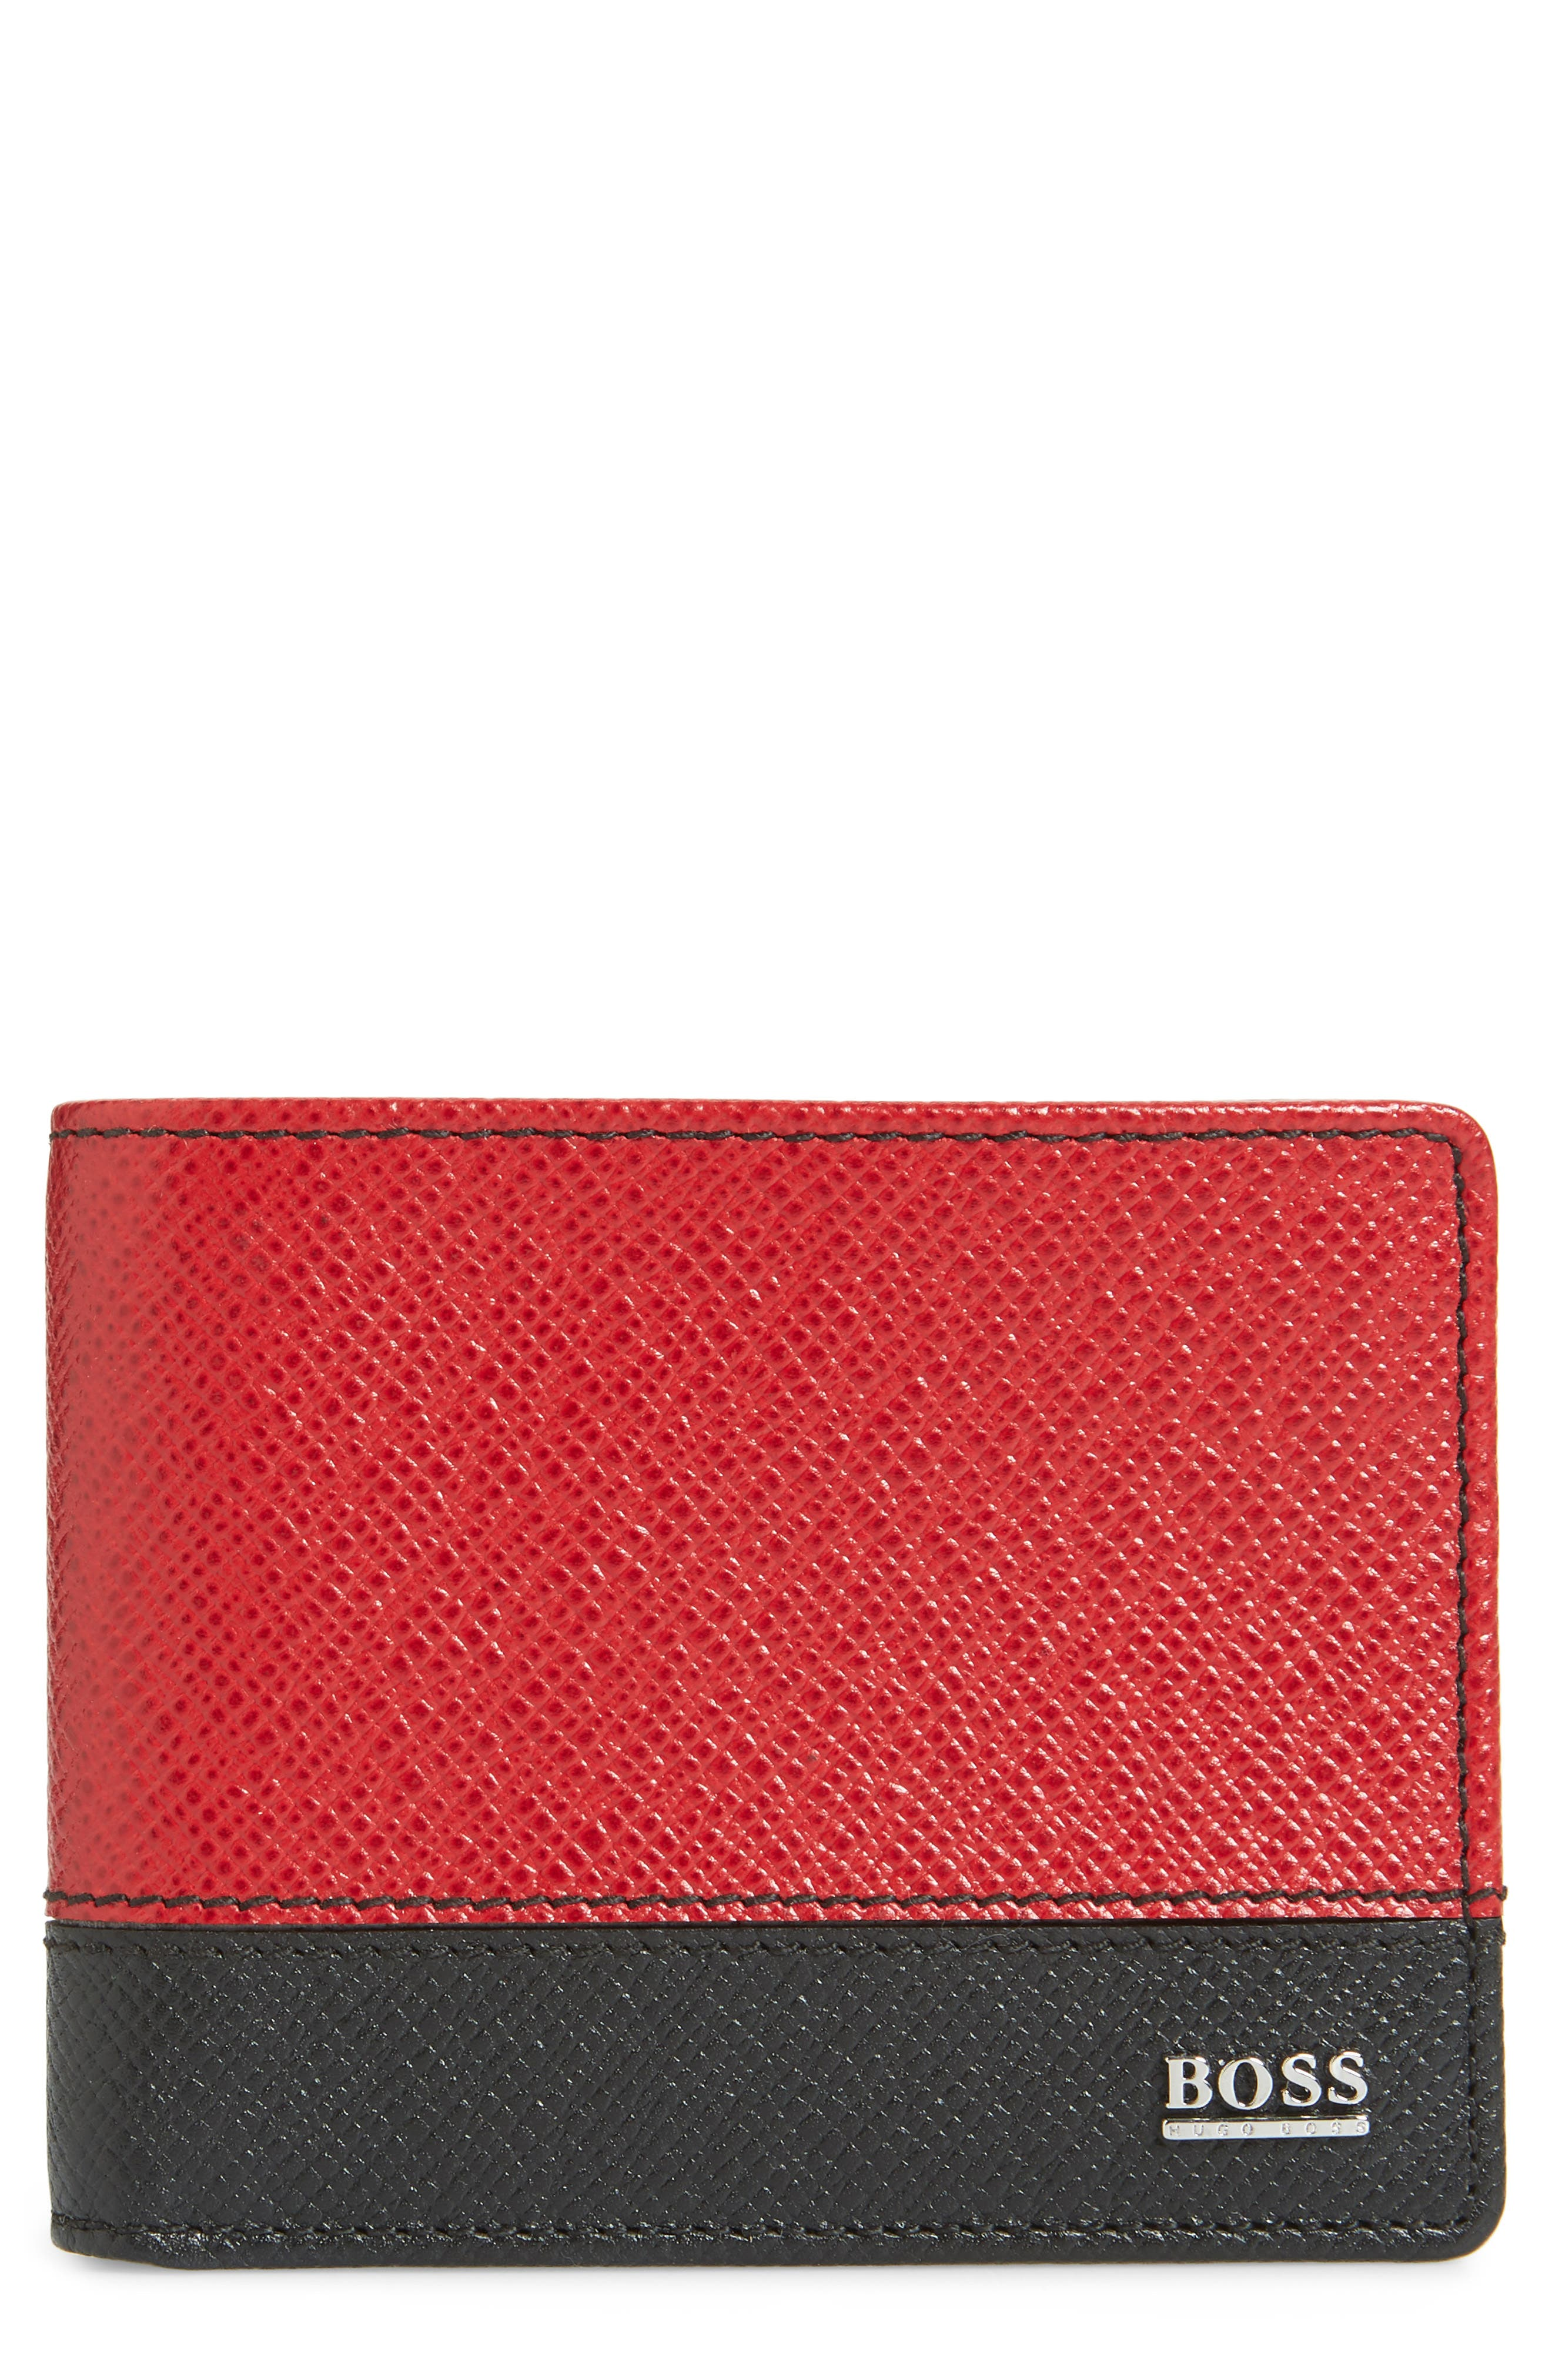 Embossed Leather Wallet,                         Main,                         color, DARK RED